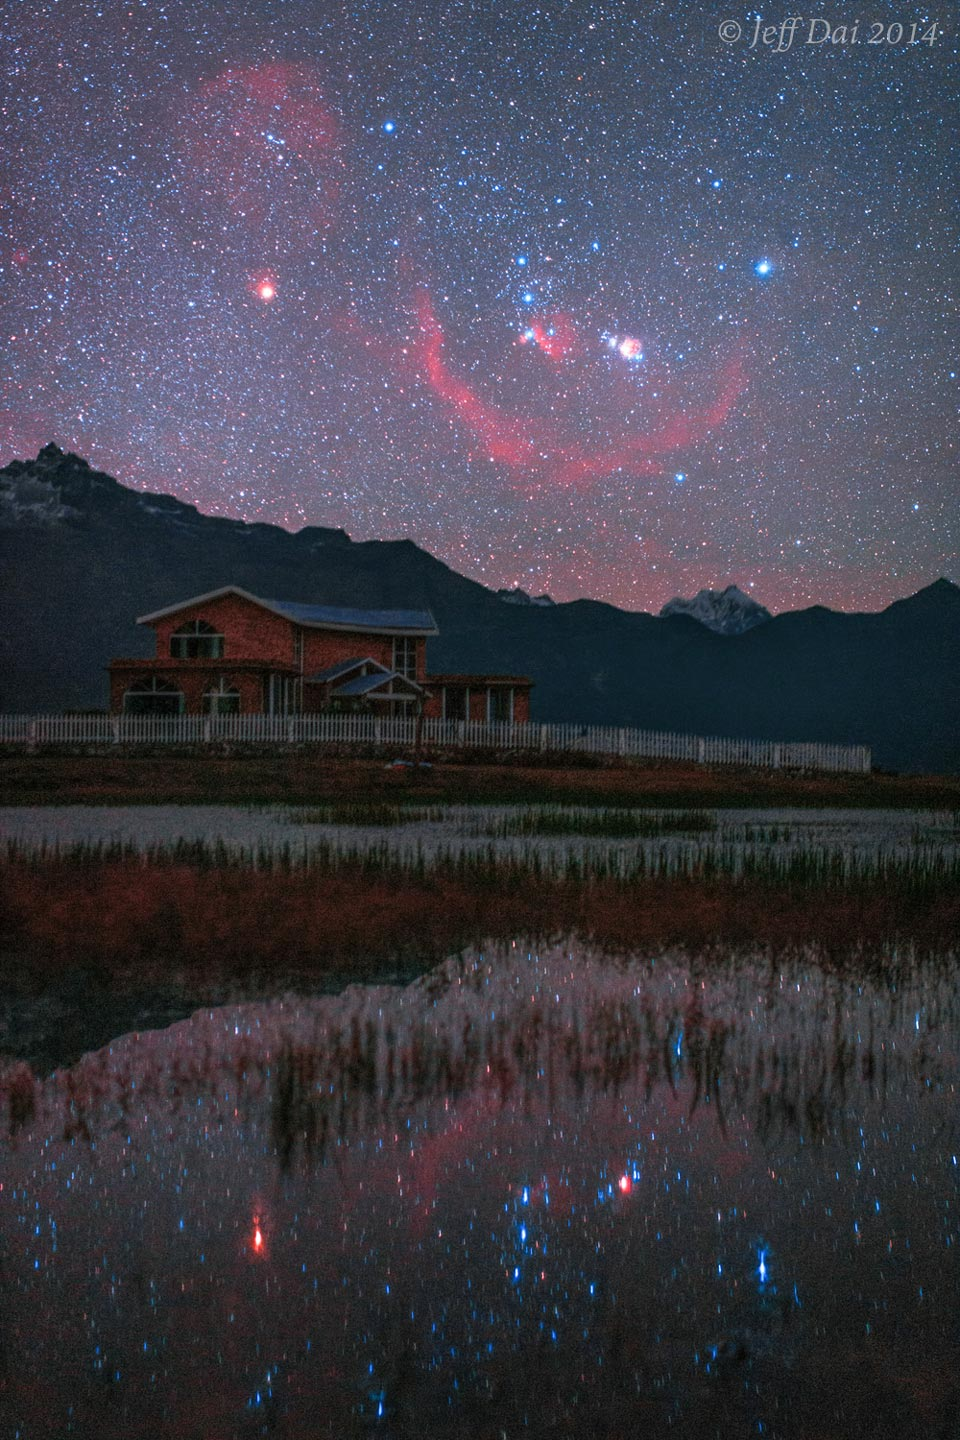 This night was so serene you could see Orion rise downwards.